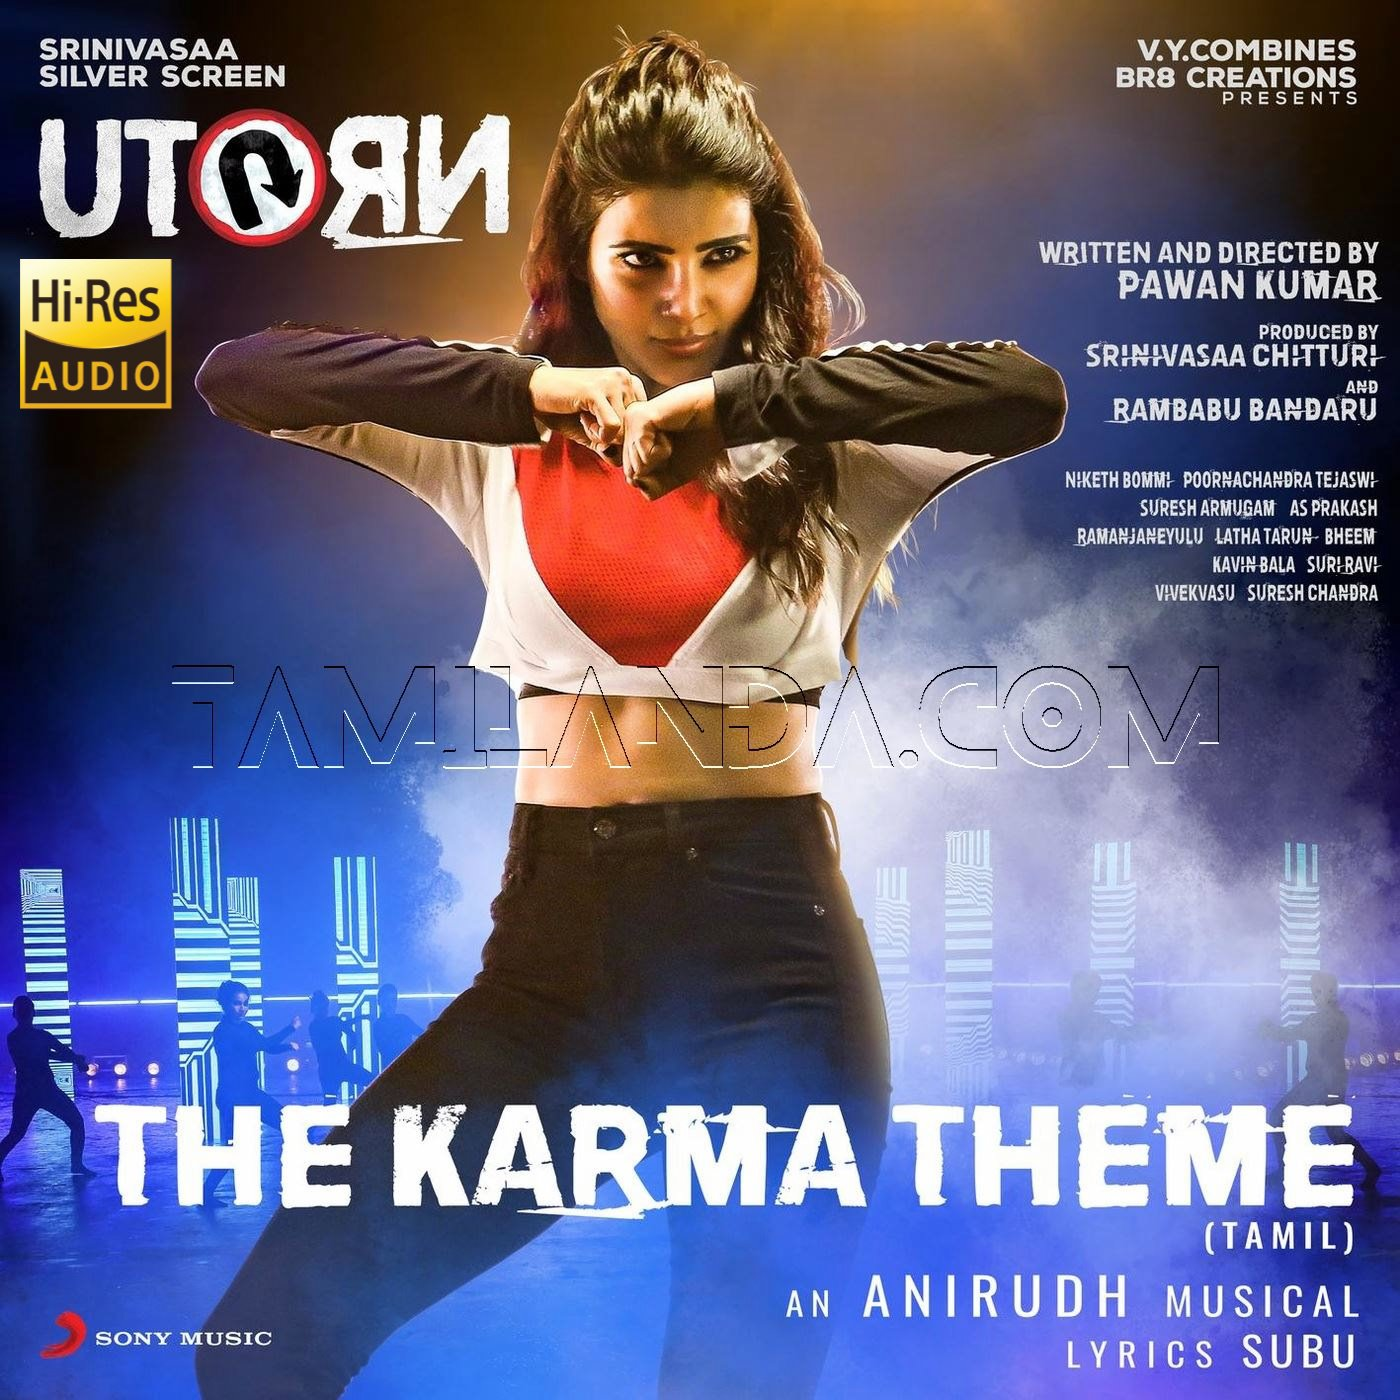 The Karma Theme (From U Turn) – Single 24 BIT 96 KHZ FLAC Song